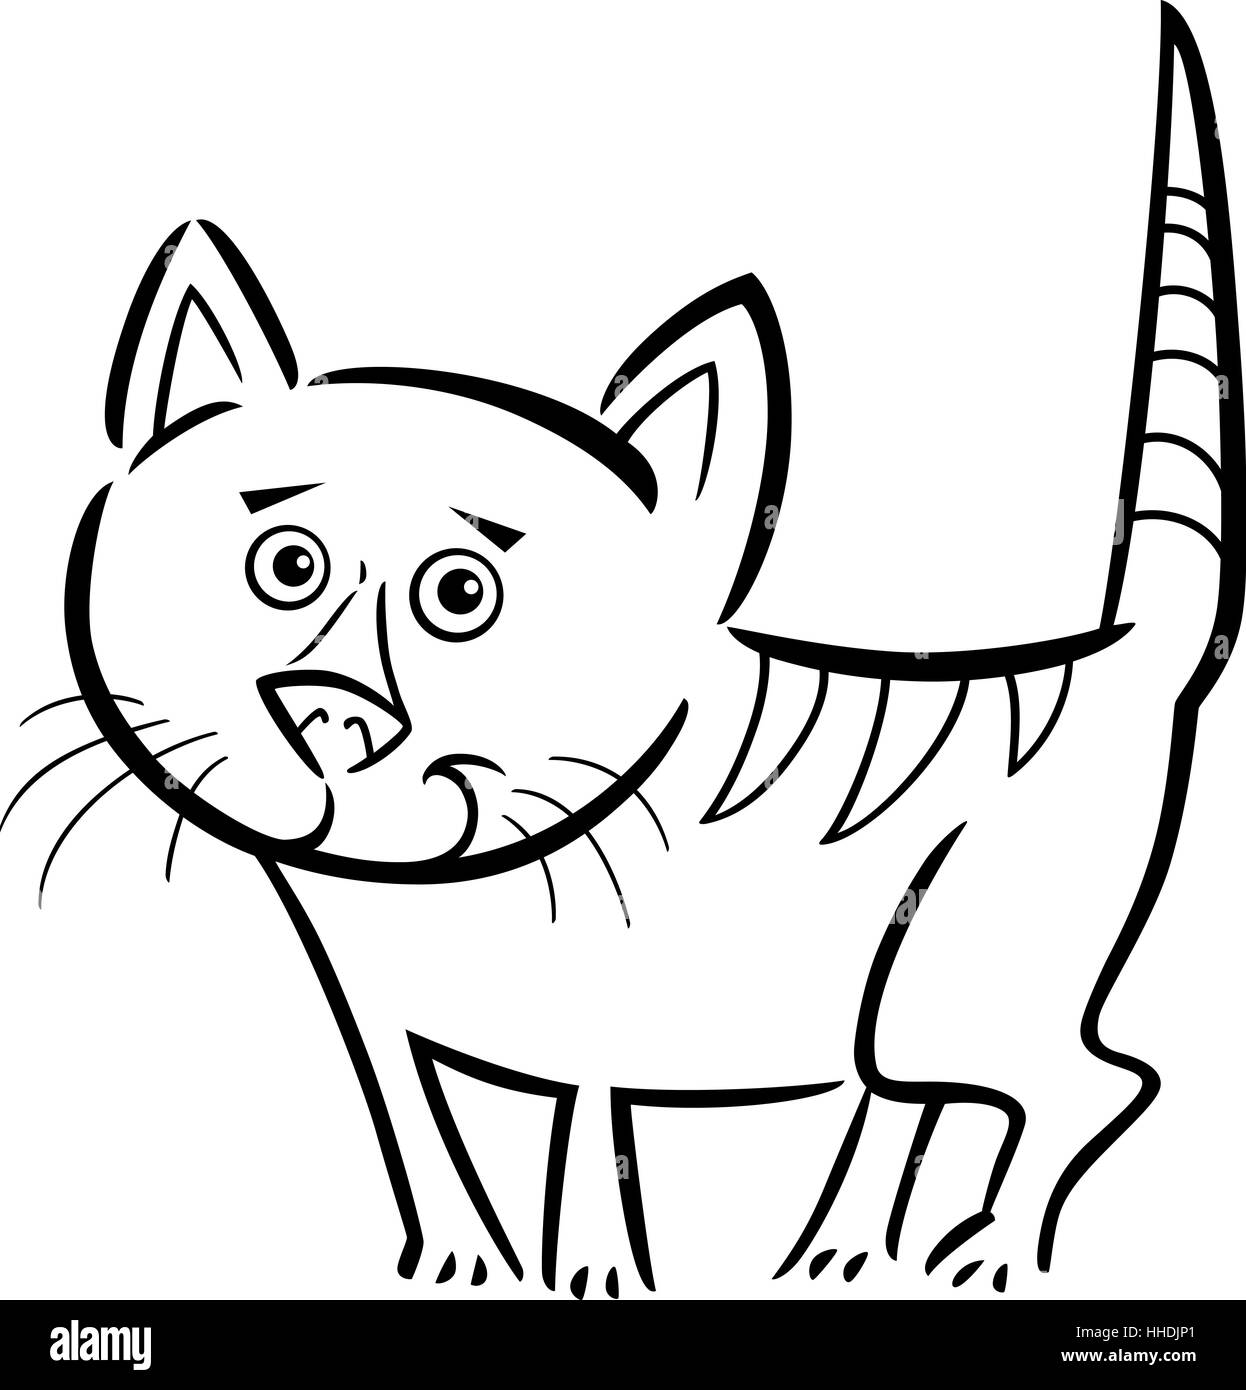 Cartoon Illustration of Cute Tabby Cat or Kitten for Coloring Book ...